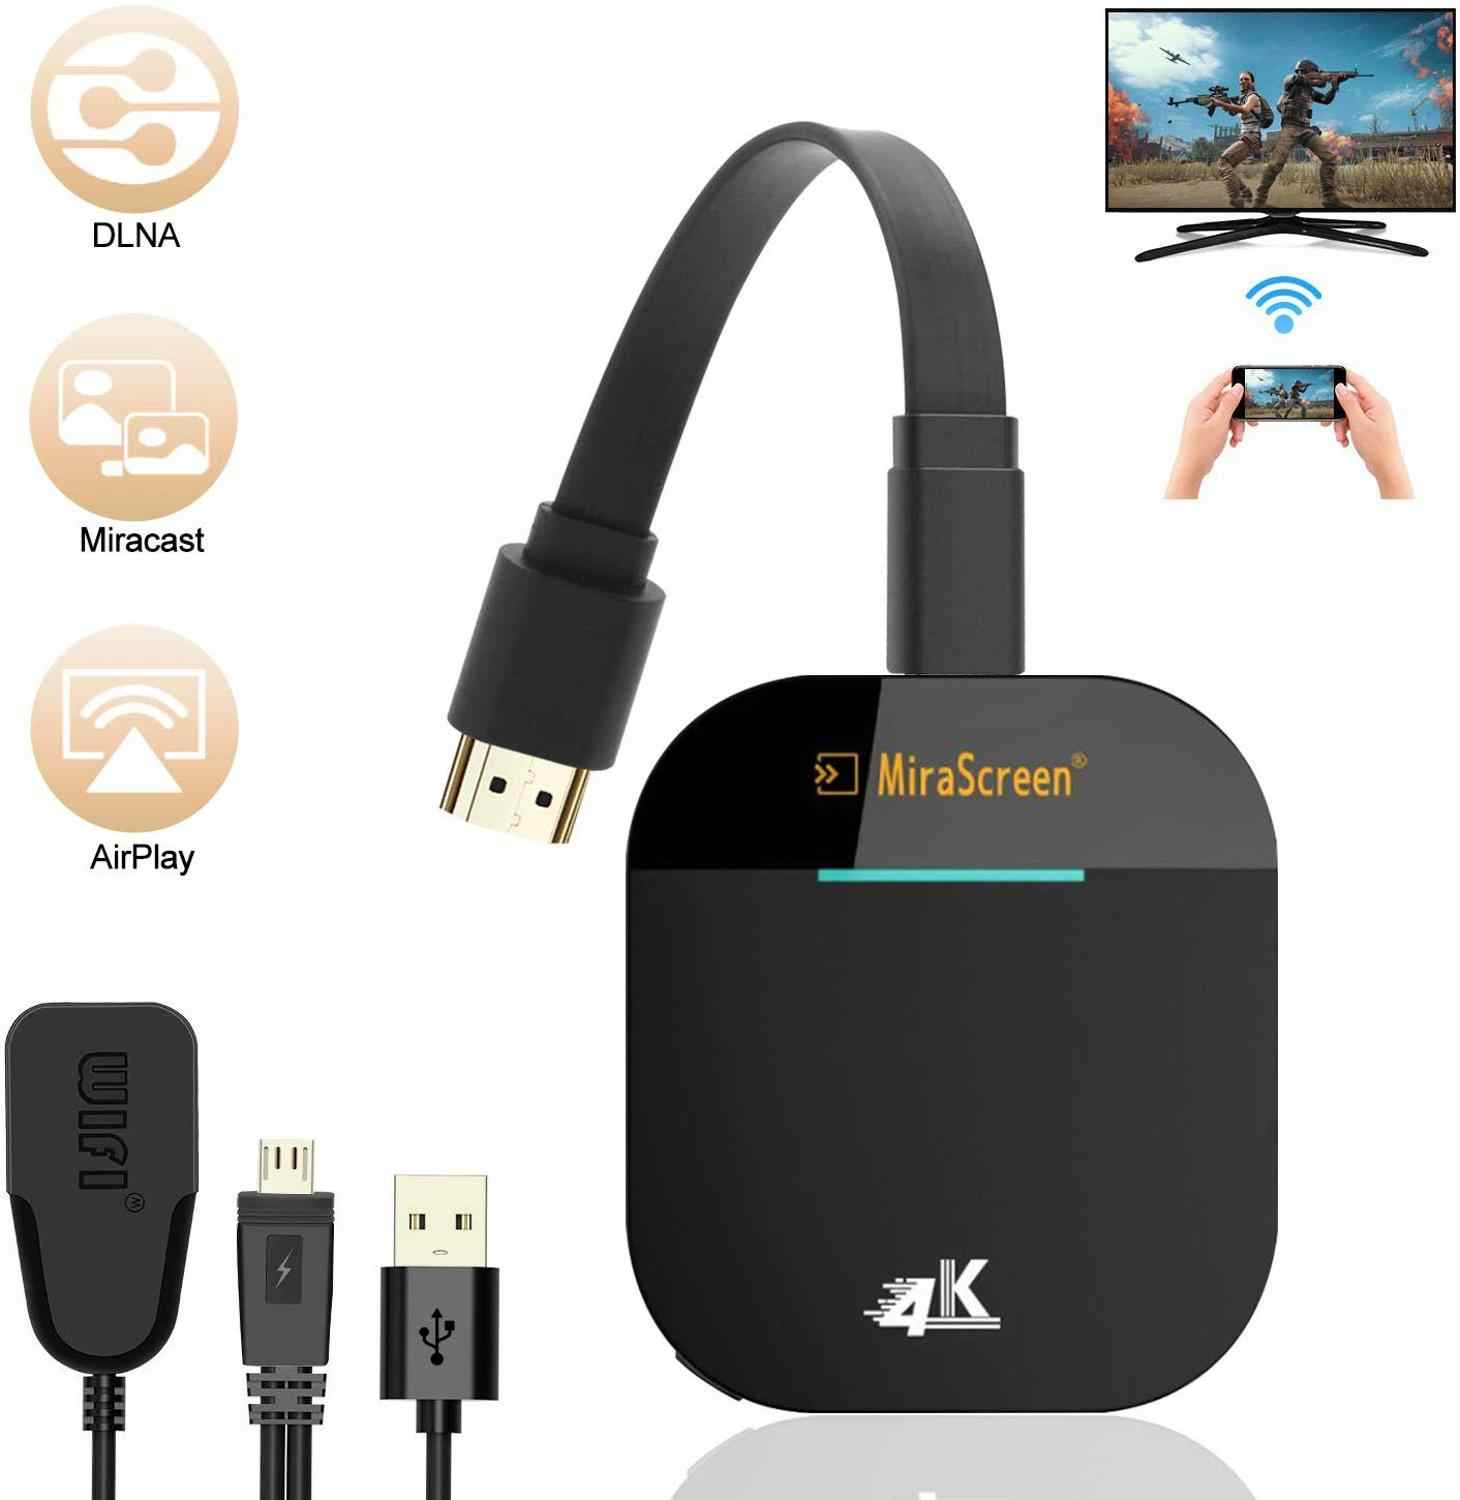 Amkle Mirascreen G5 2.4G 5G 1080P 4K Draadloze Hdmi Dongle Tv Stick Miracast Airplay Ontvanger Wifi dongle Spiegel Screen Cast